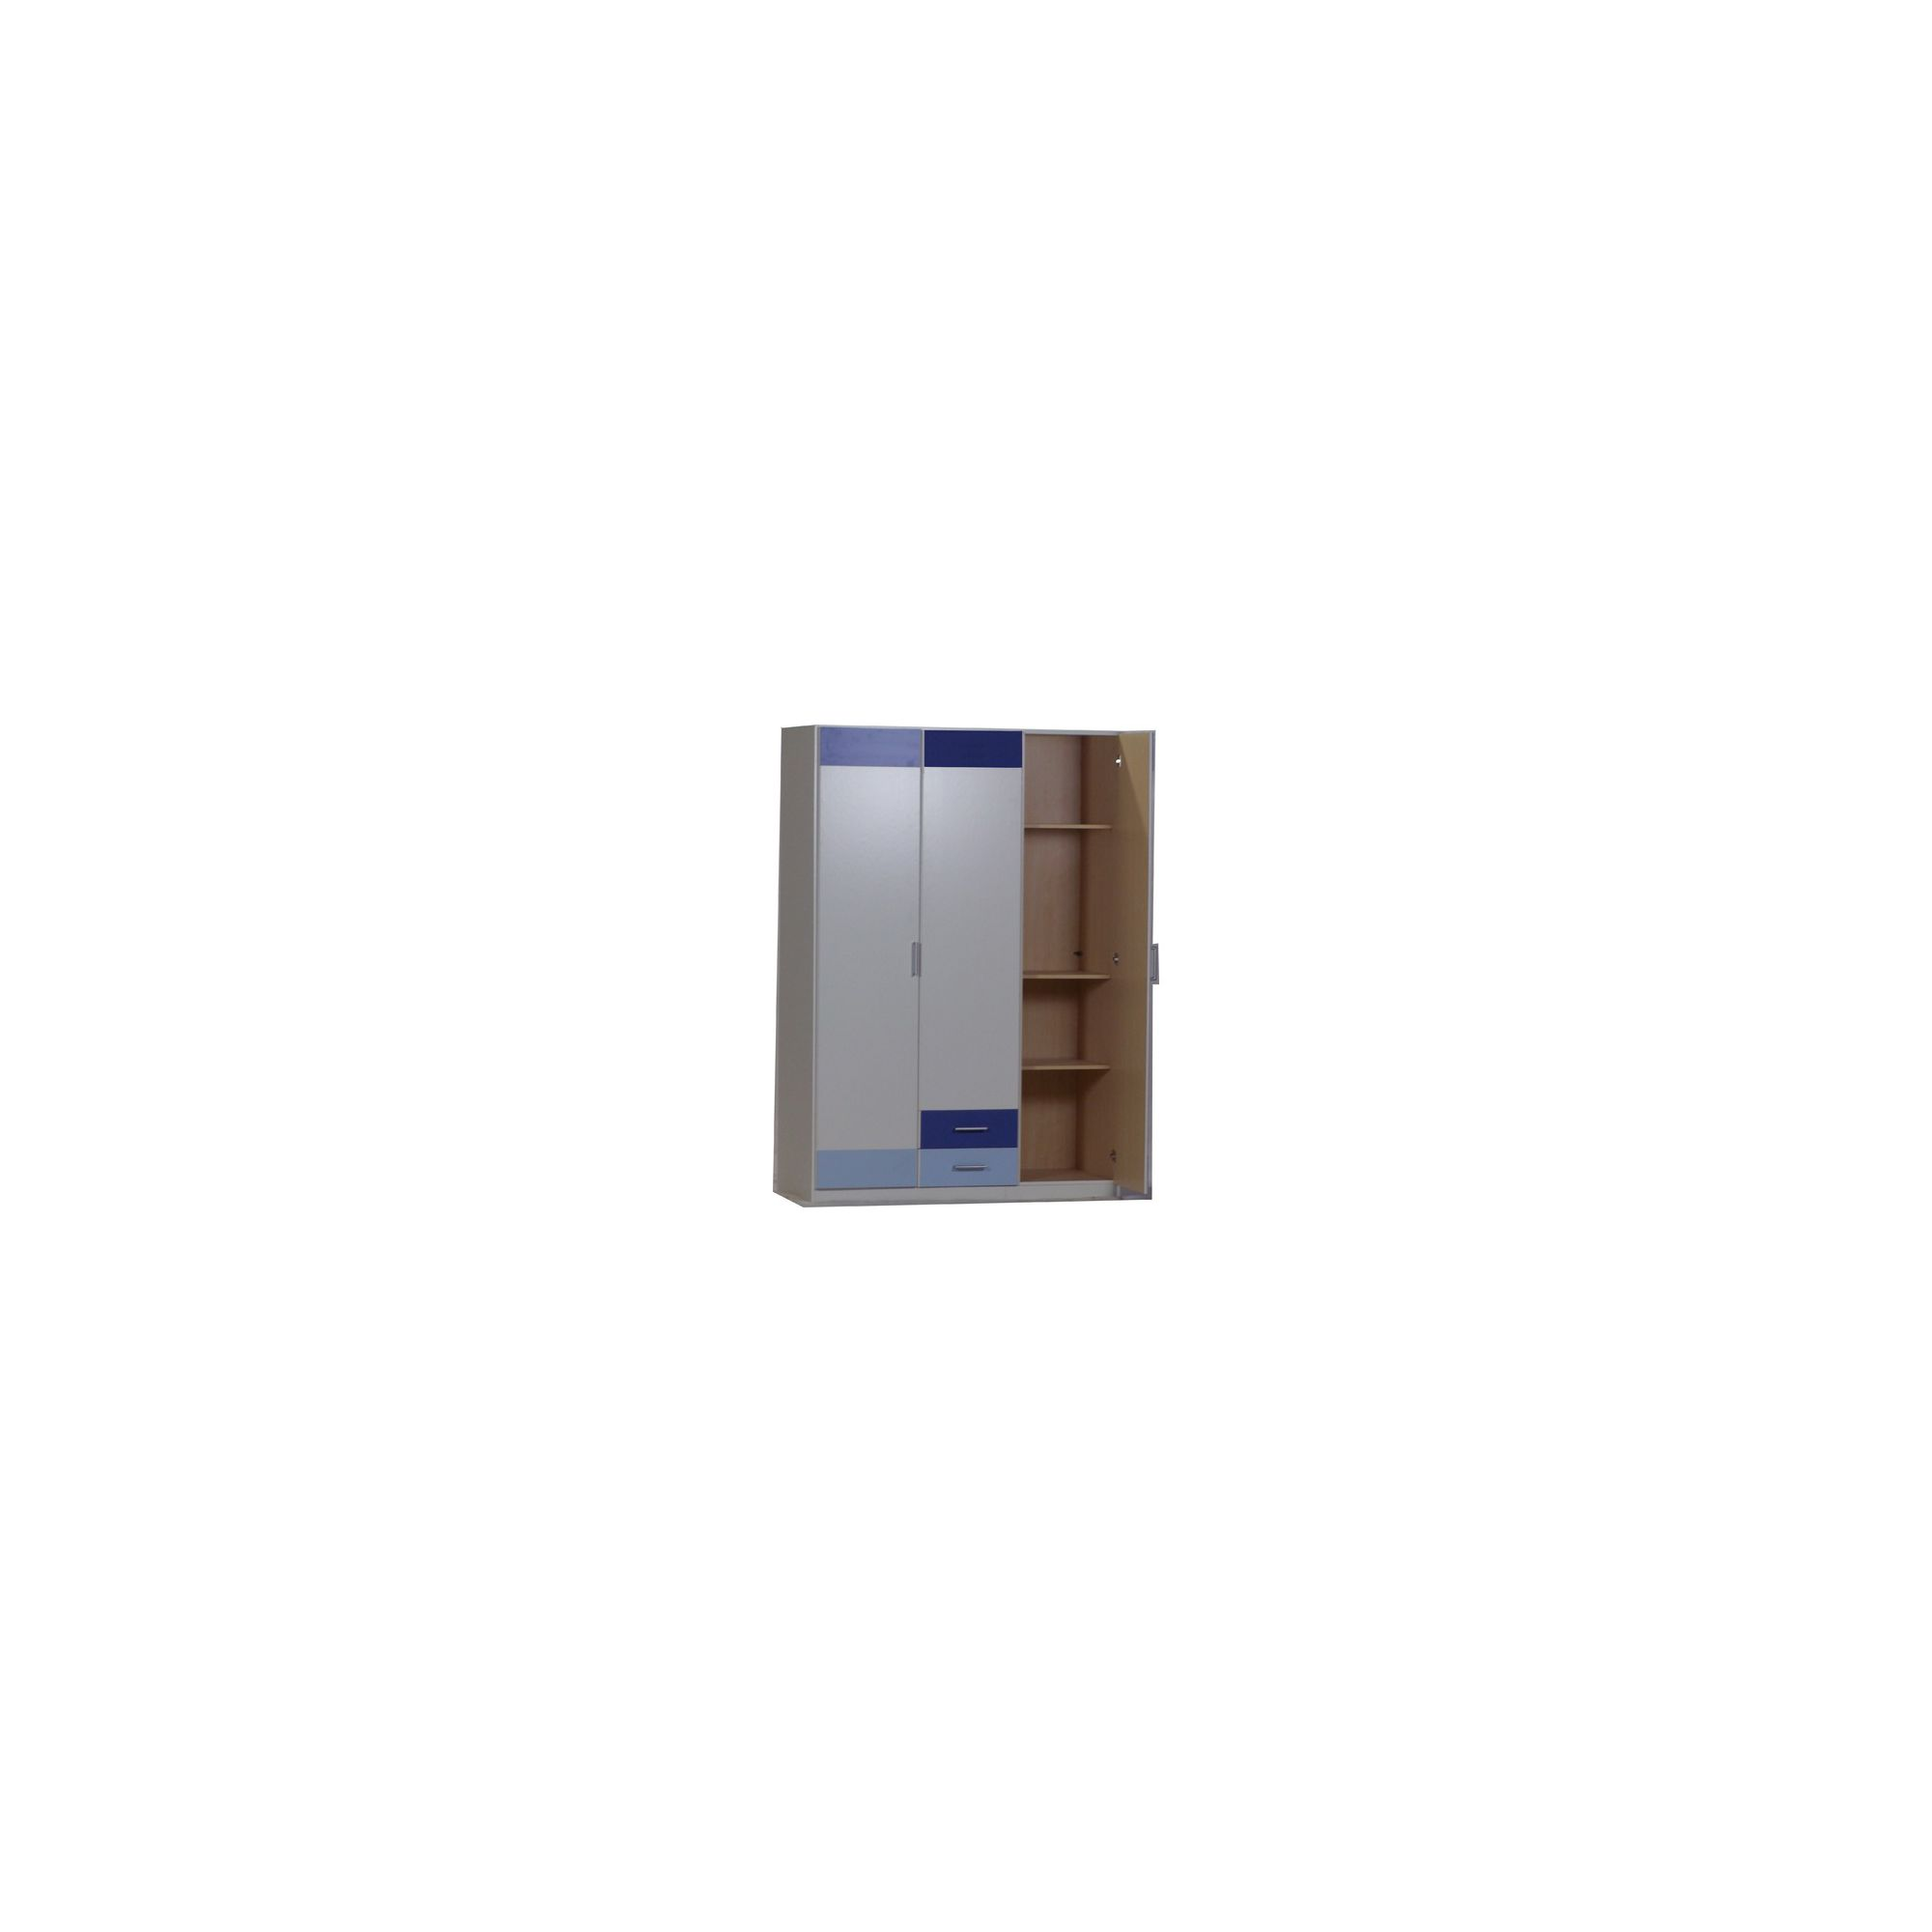 Ecos Furniture Harbour 3 Door Wardrobe at Tescos Direct